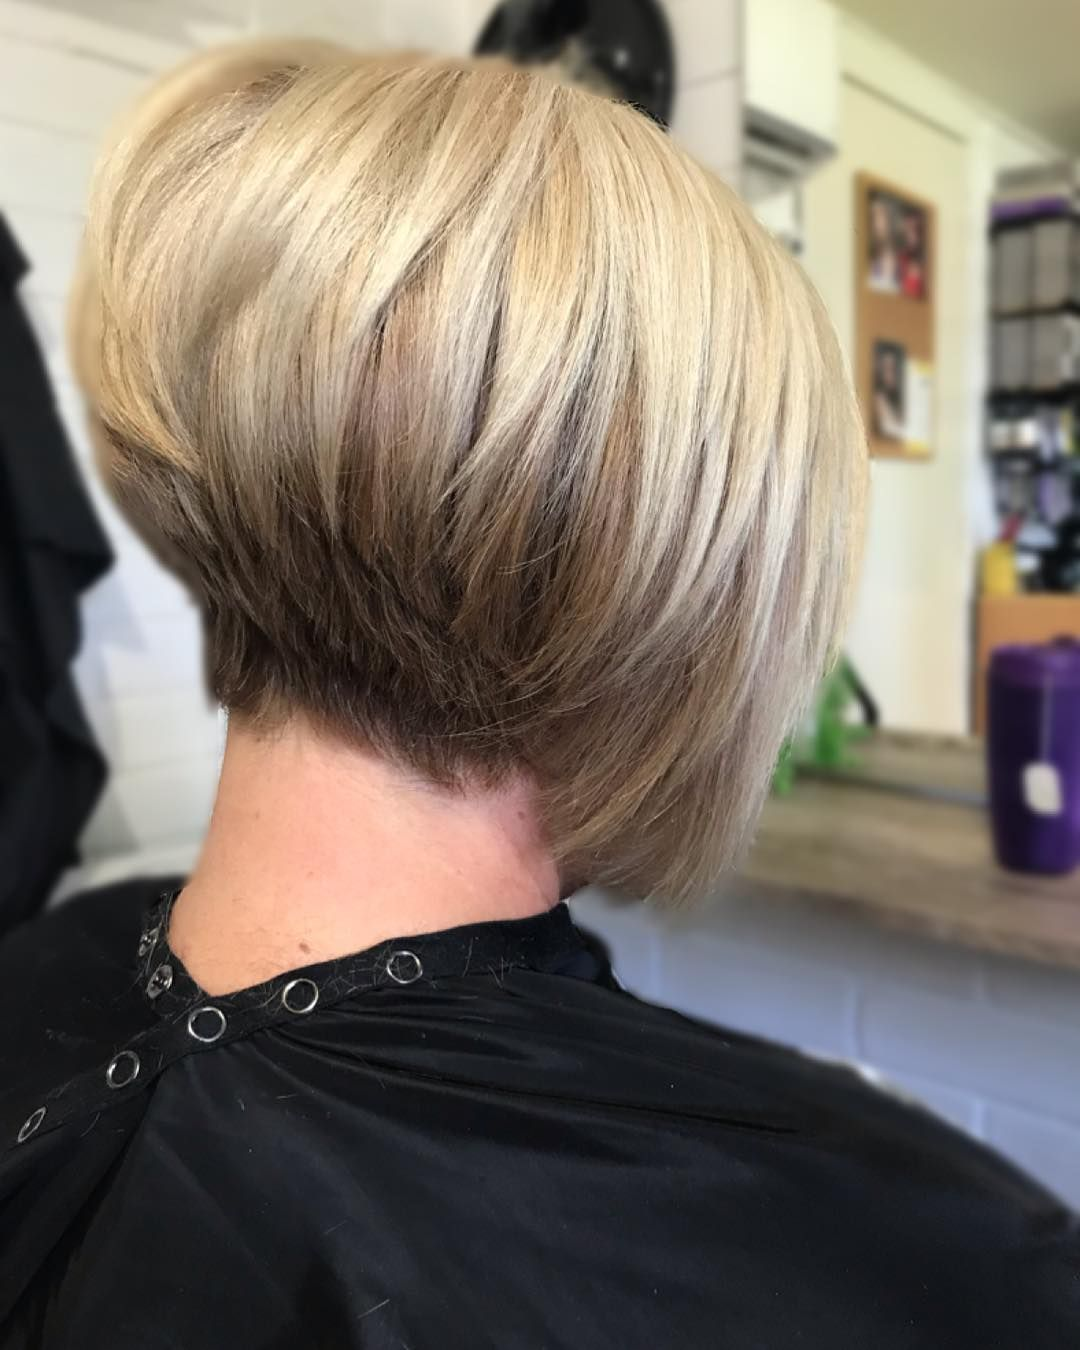 Teigan Miller Hair Stylist On Instagram Hair Goals I Seriously Love A Concave Bob And That Blonde Olaplex Hair Stylist Hair Goals Concave Bob